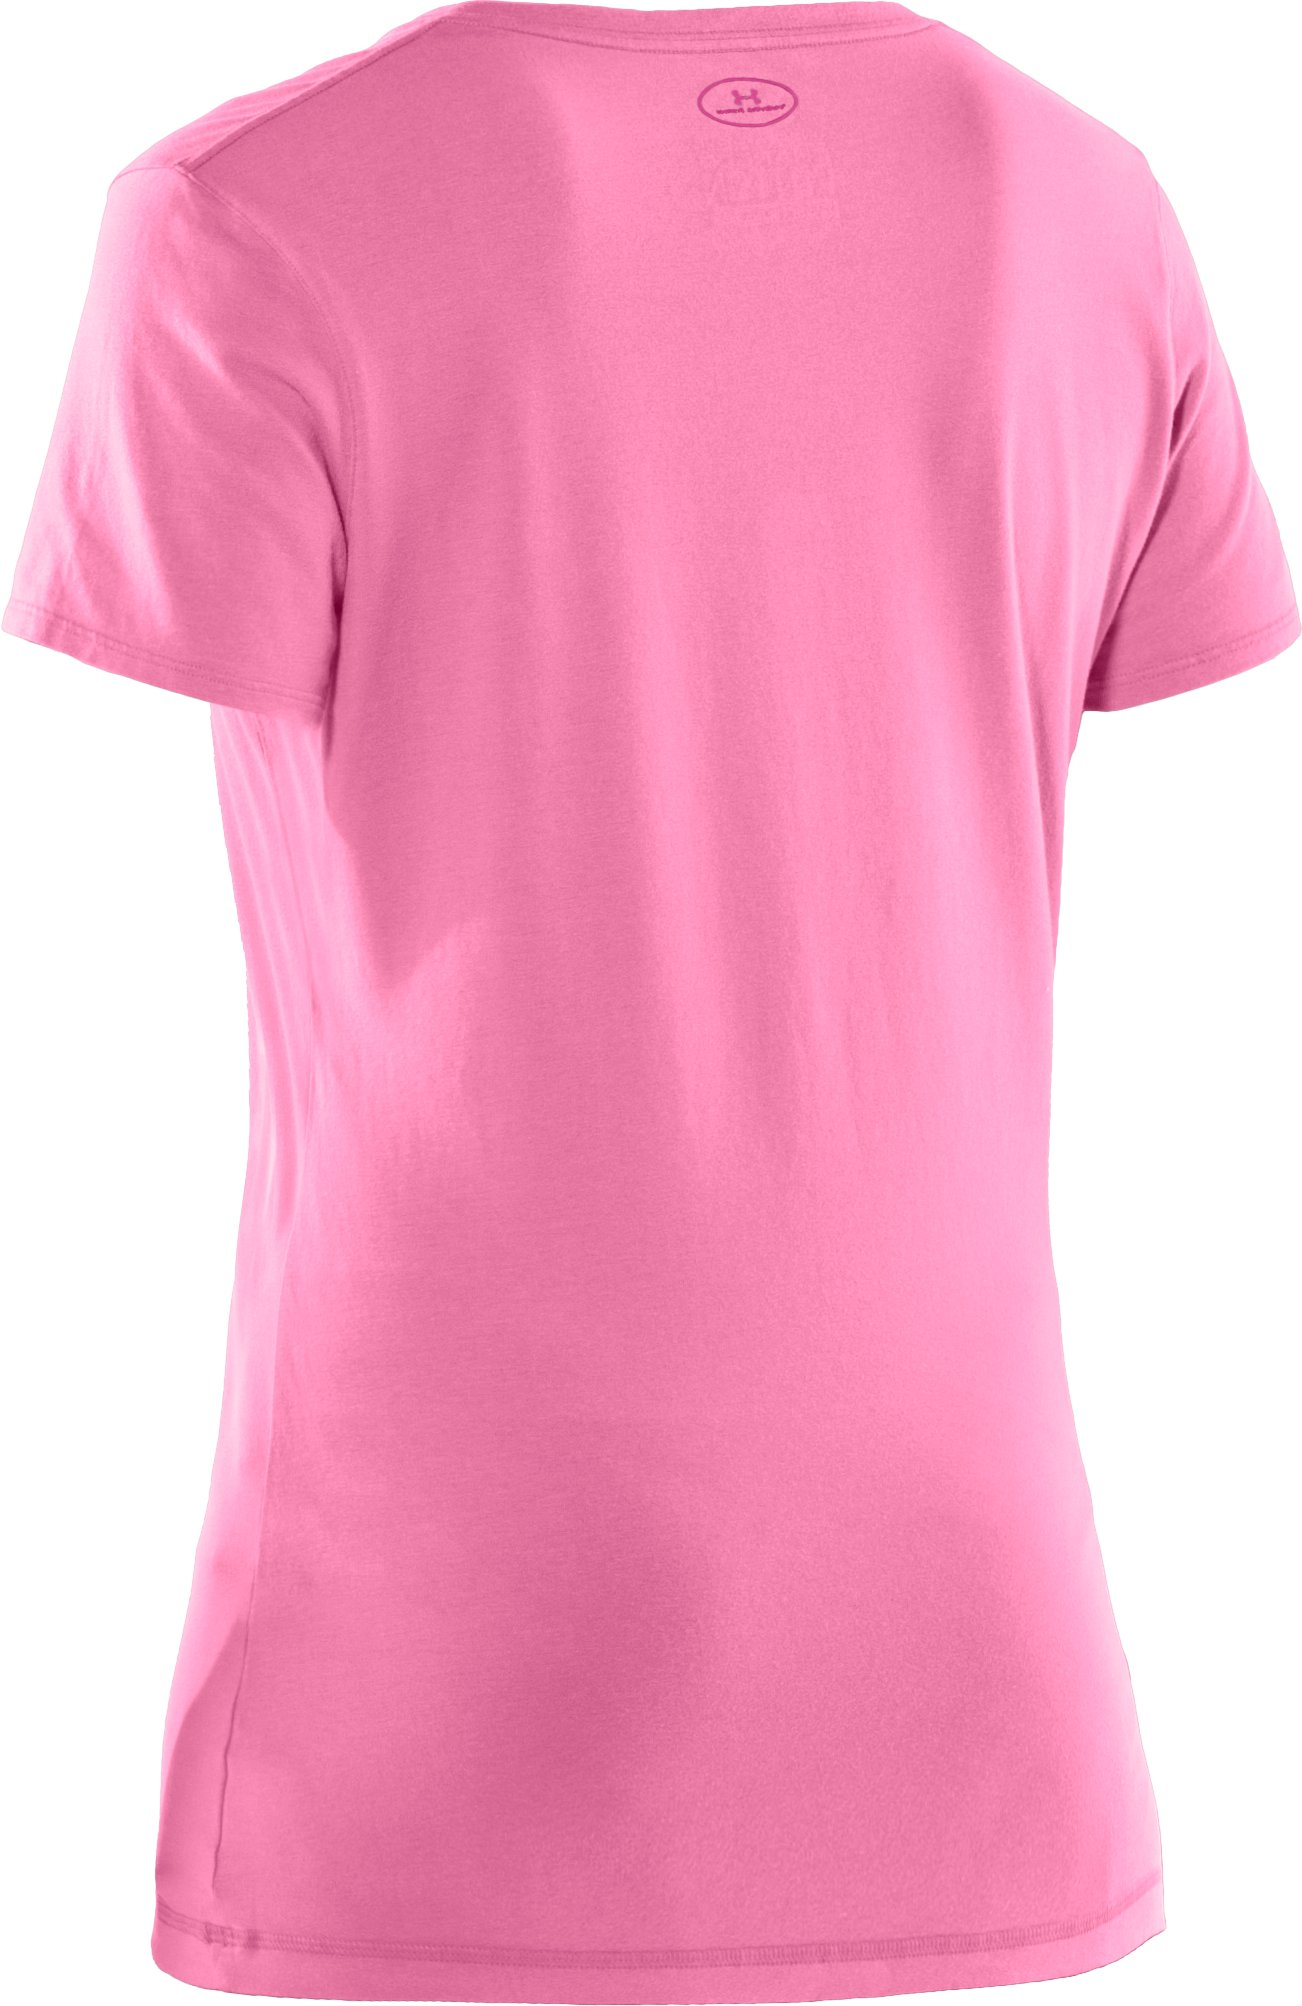 Women's Charged Cotton® Sassy Scoop T-Shirt, Fluo Pink